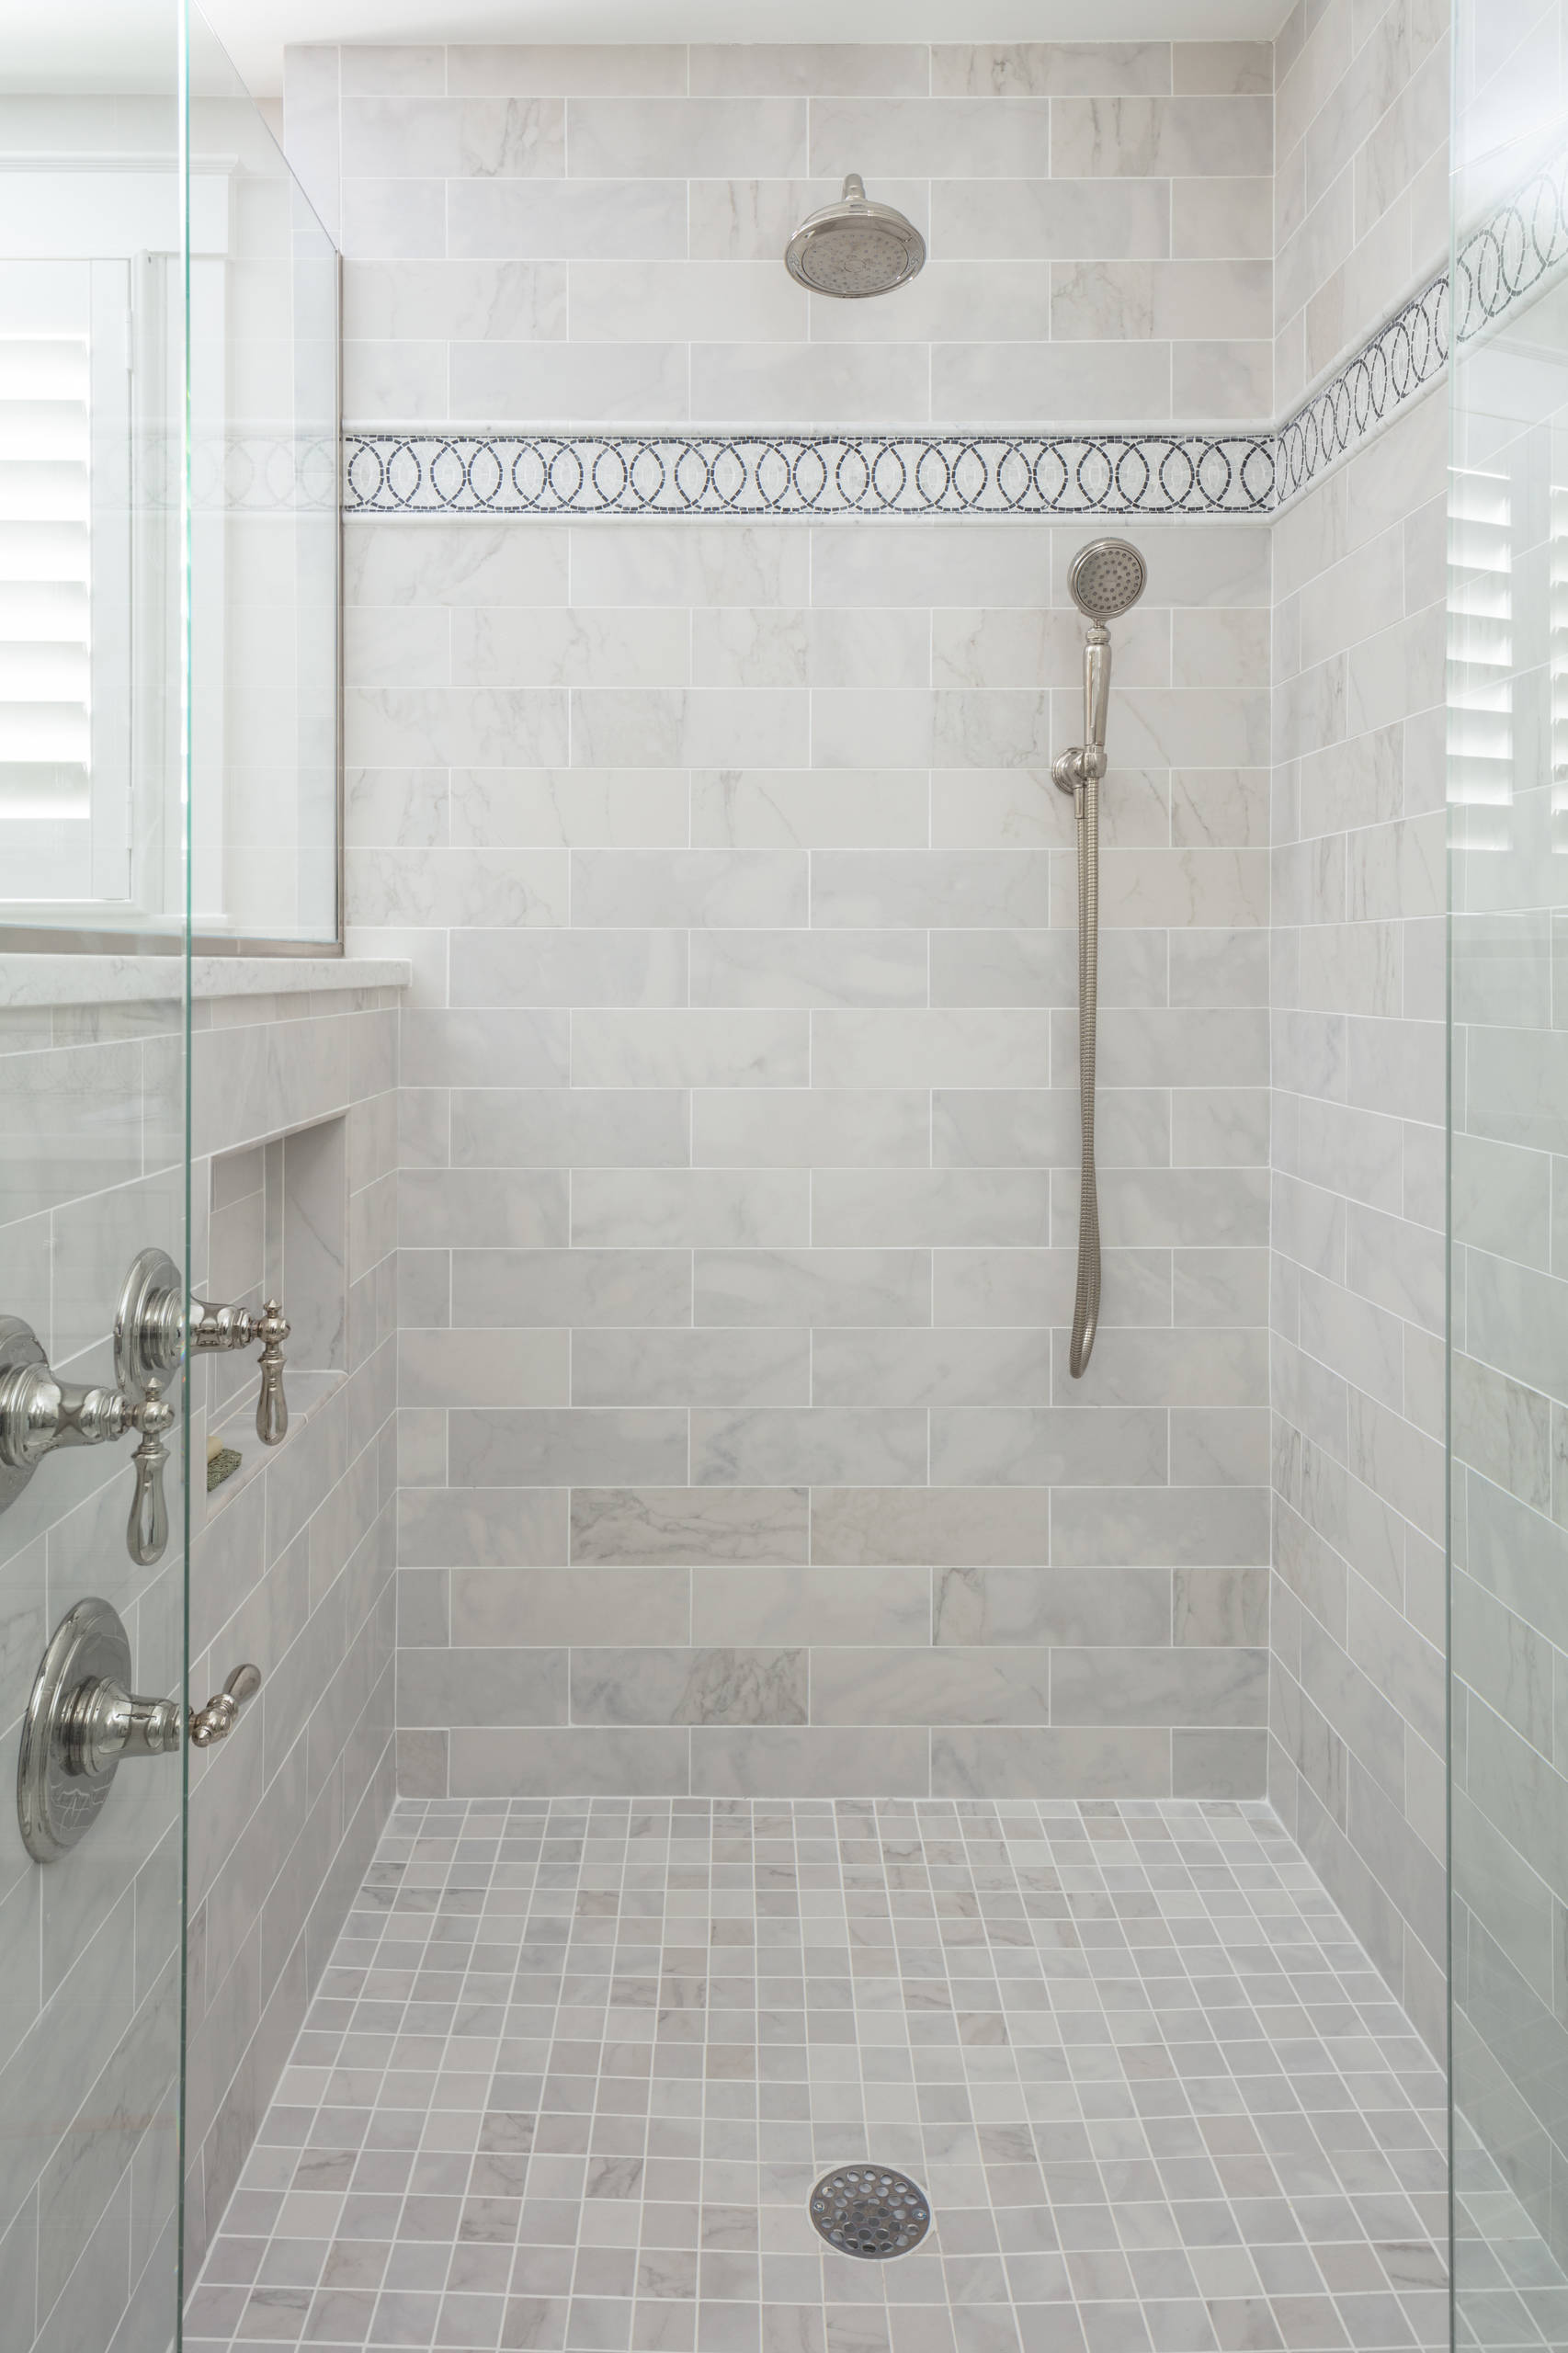 75 Beautiful Traditional Gray Tile Bathroom Pictures Ideas April 2021 Houzz